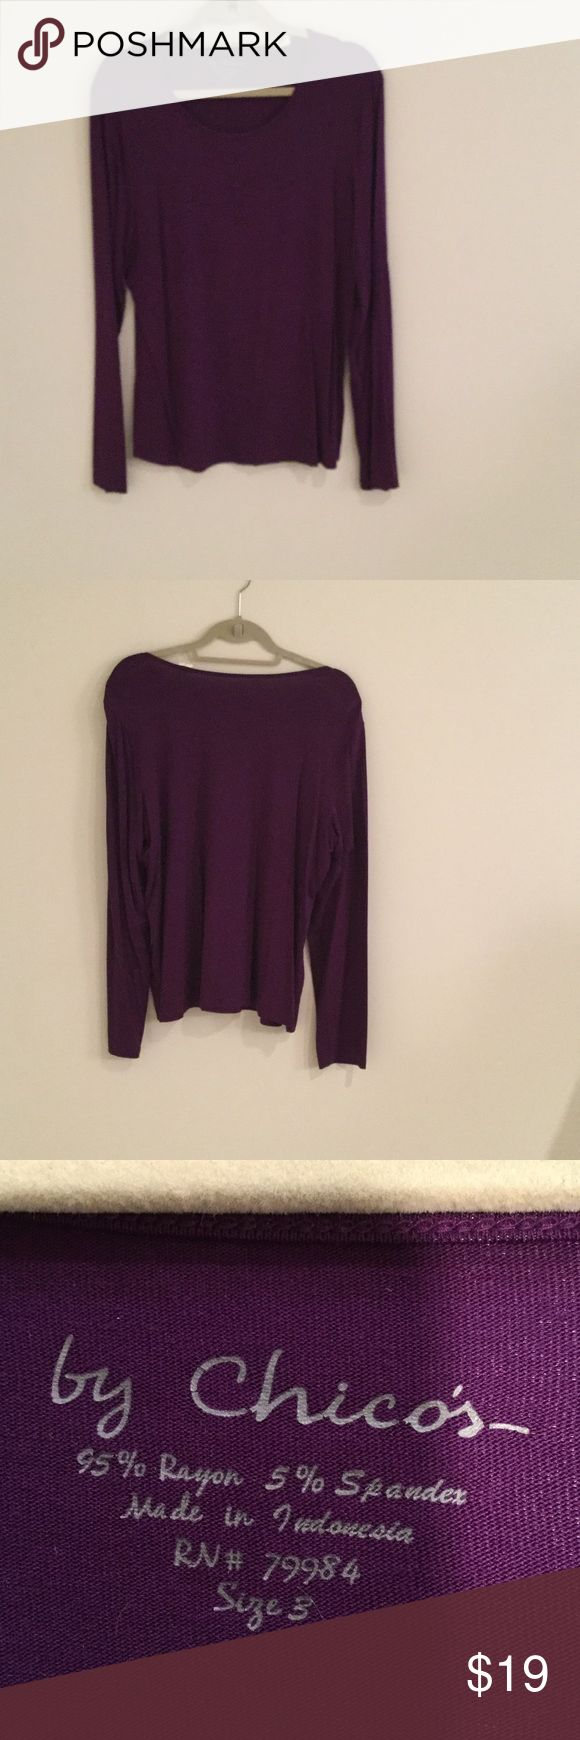 Chicos size 3  purple long sleeve T-shirt Chicos size 3 (16/18) purple this scoopneck tee is one of those wardrobe fundamentals slim sleeves and smooth fabrication create the perfect foundation for your favorite layered look Chico's Tops Tees - Long Sleeve